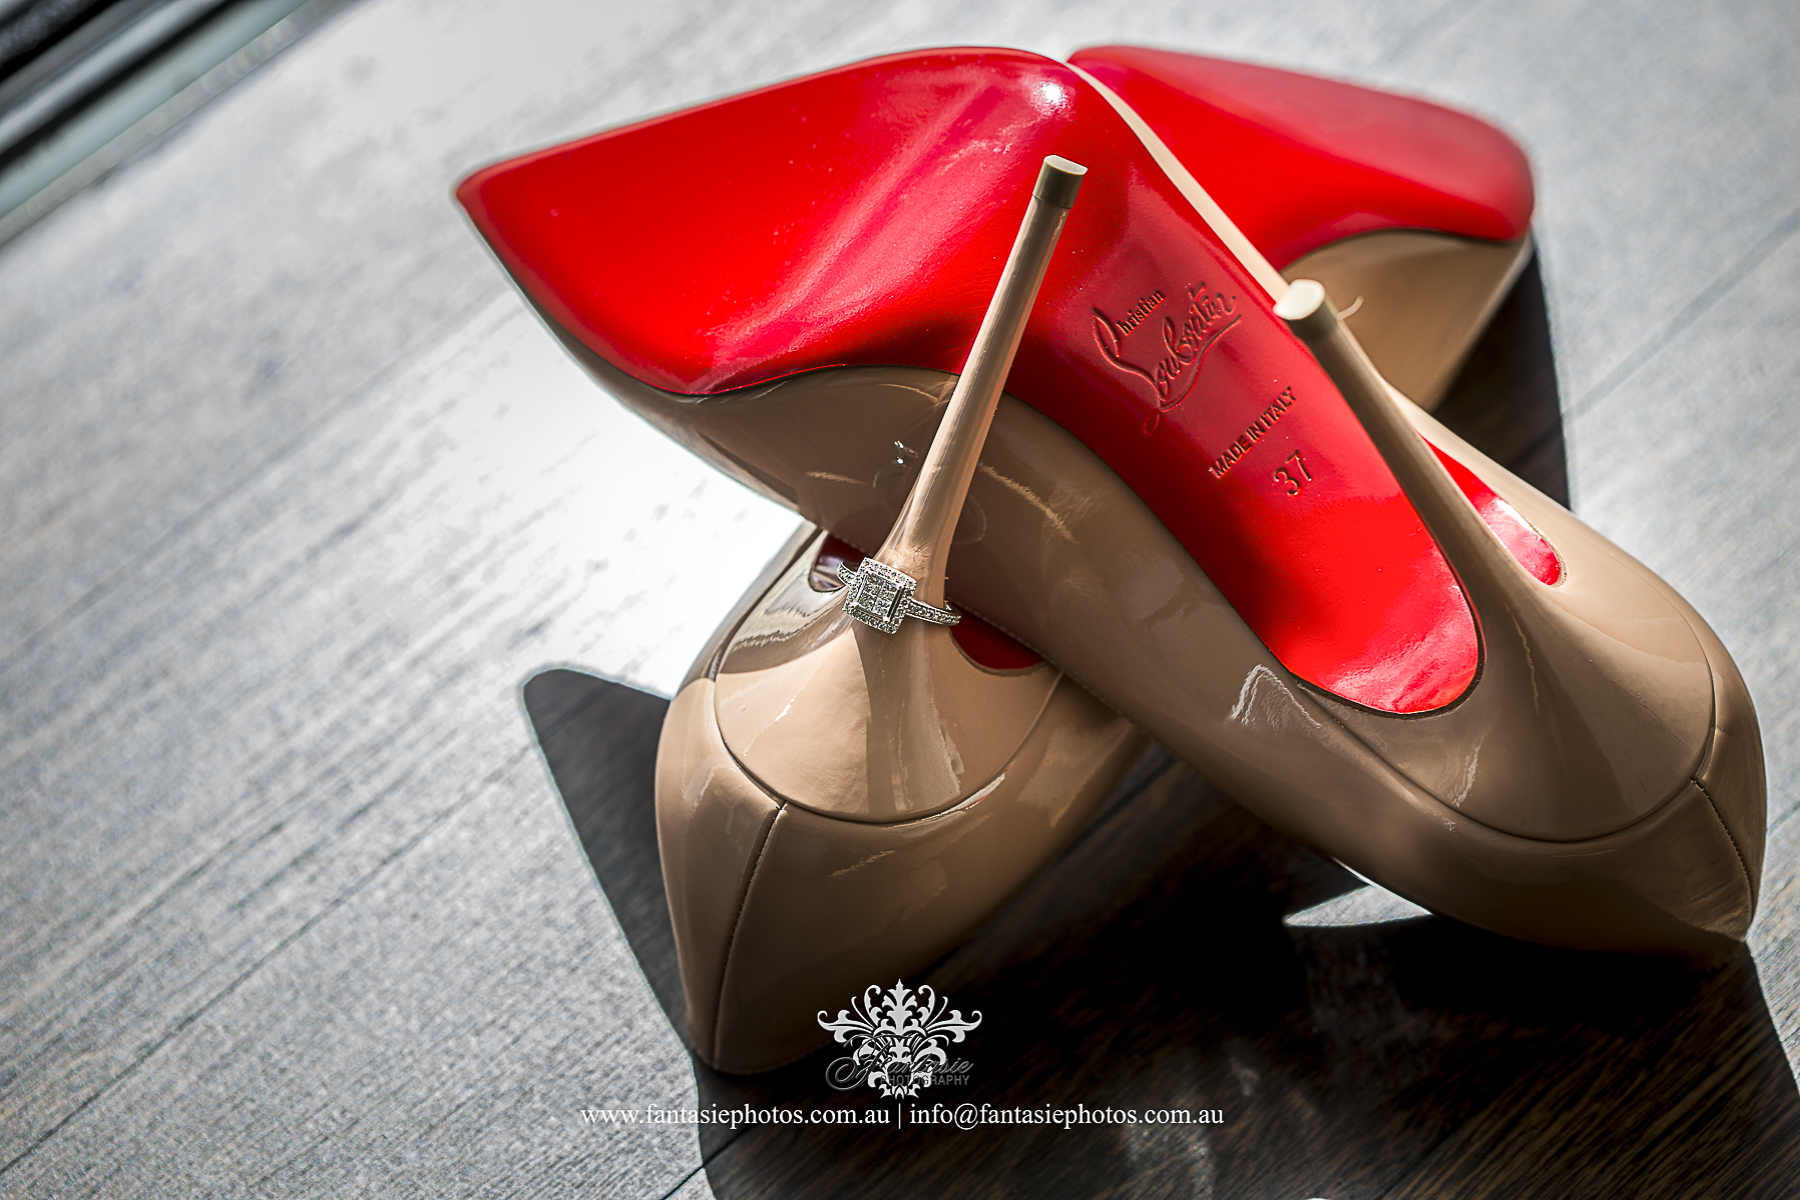 Superior luxury bridal style best wedding high heel christian louboutin photo | Fantasie Photography